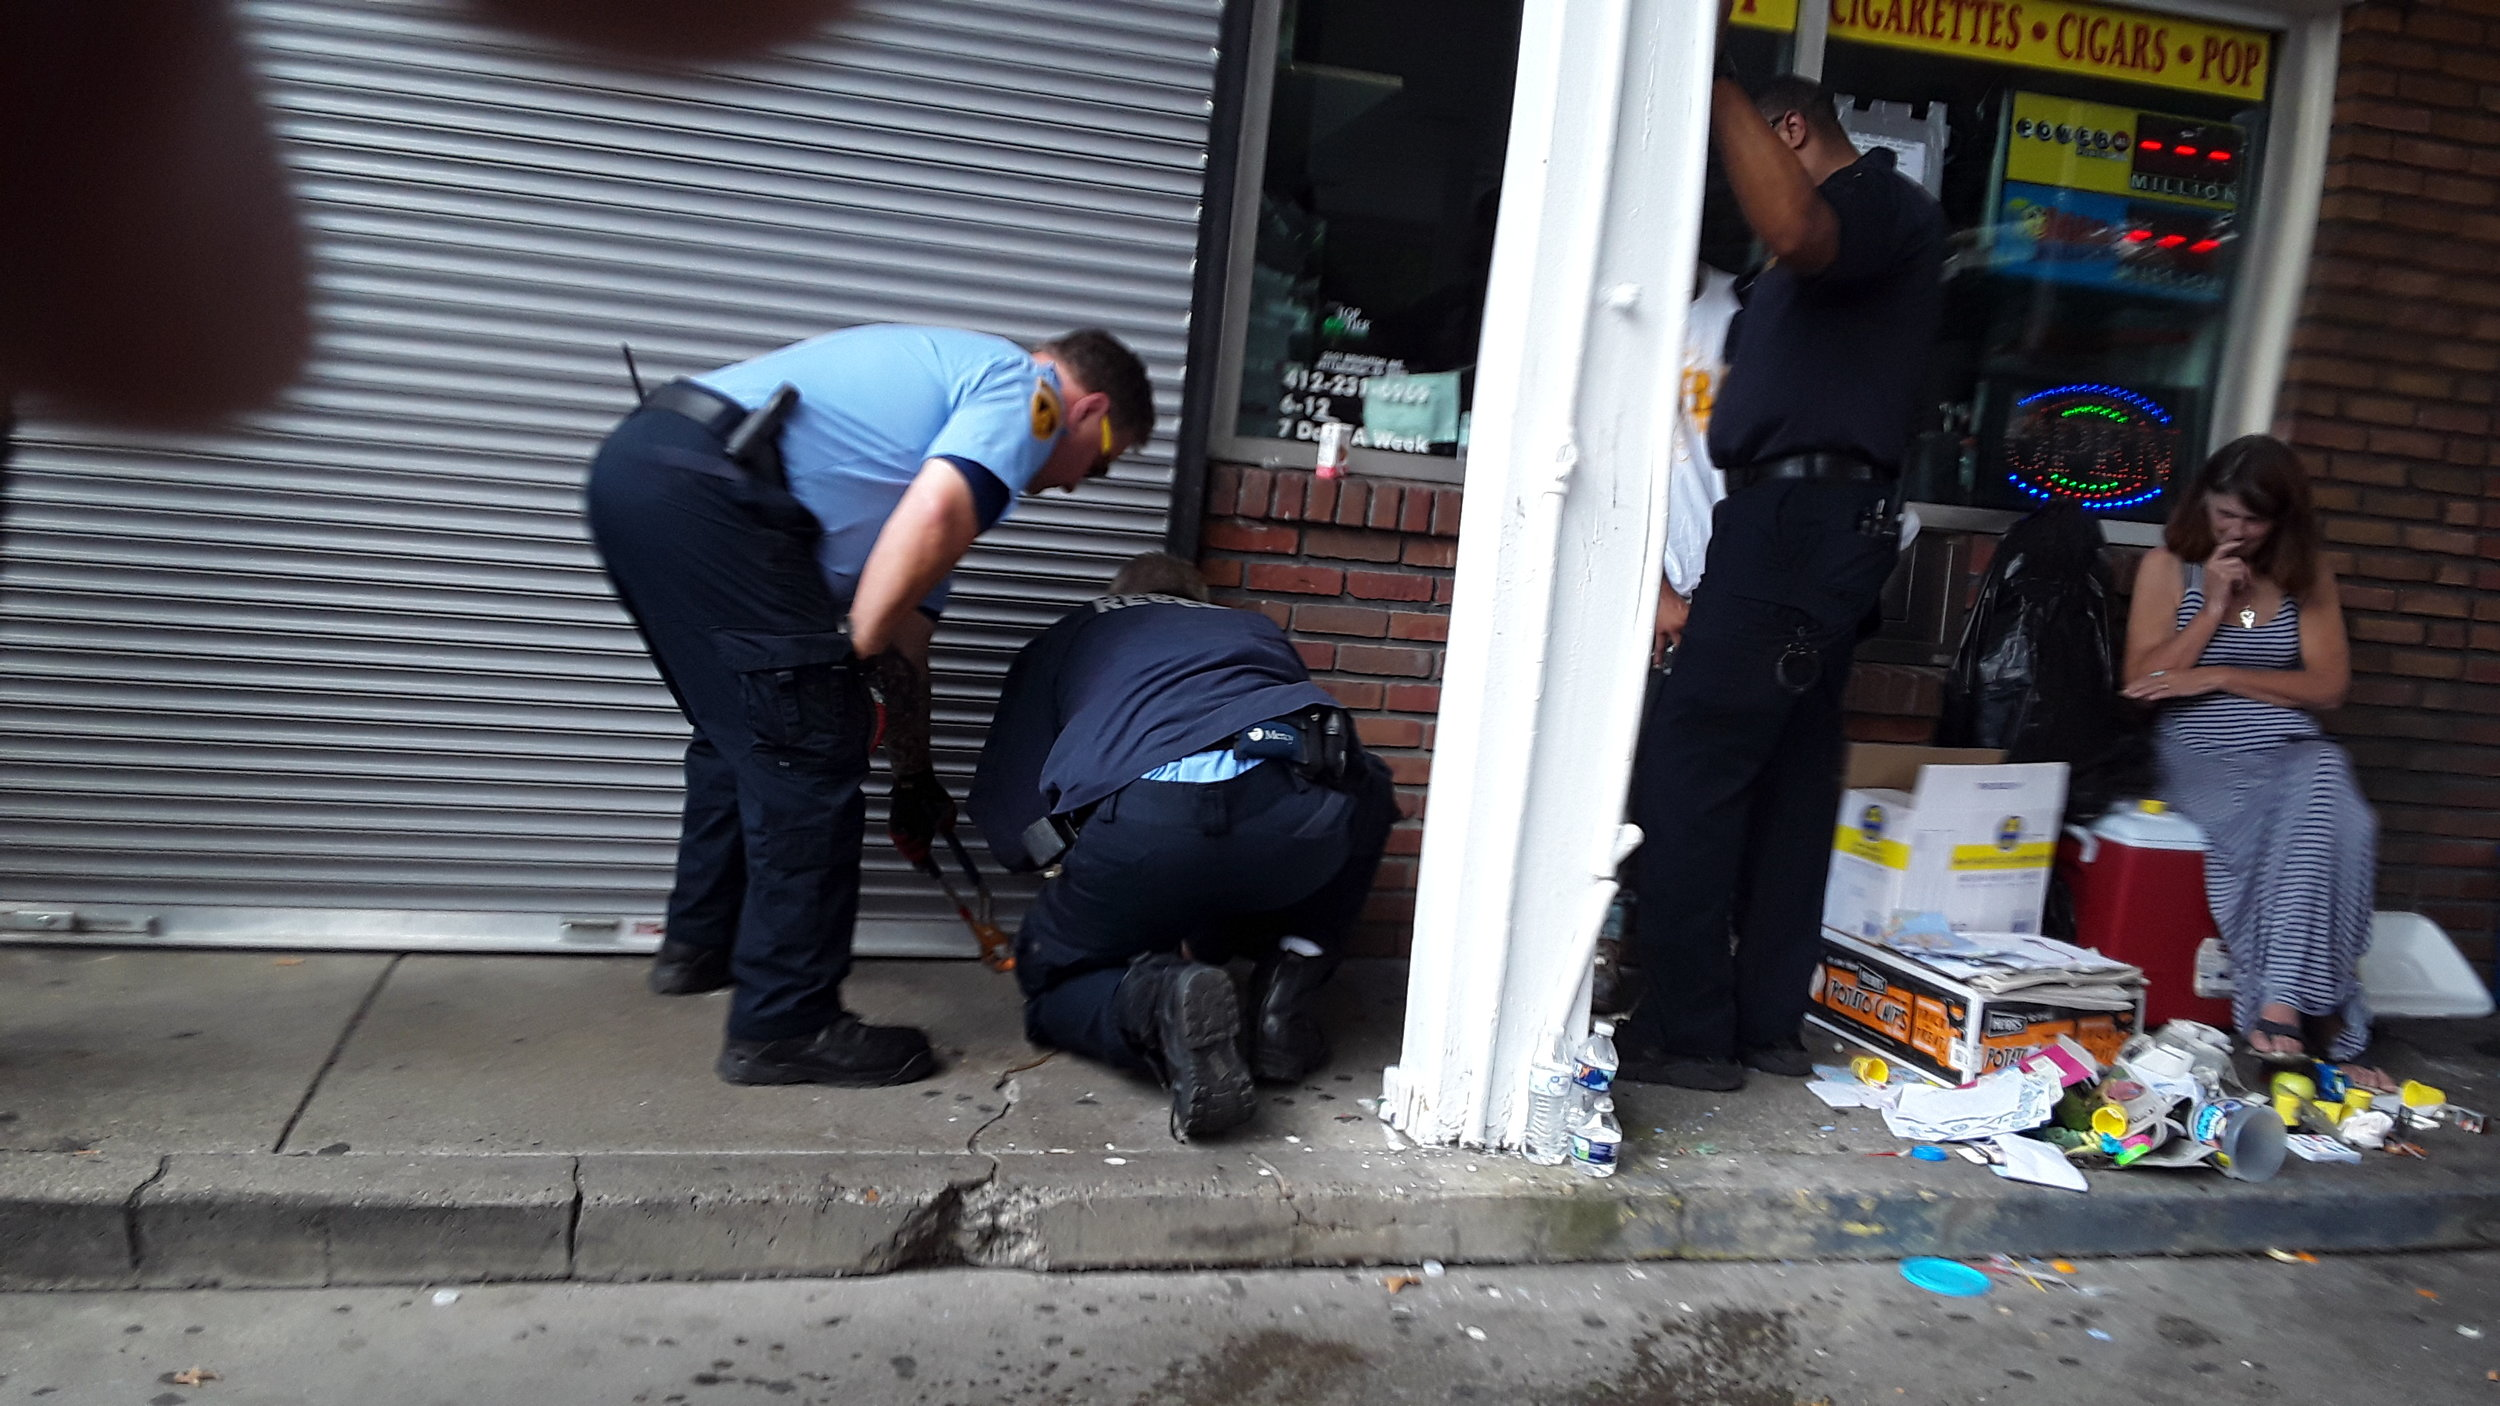 Three police officers examine the sidewalk in front of a gas station.